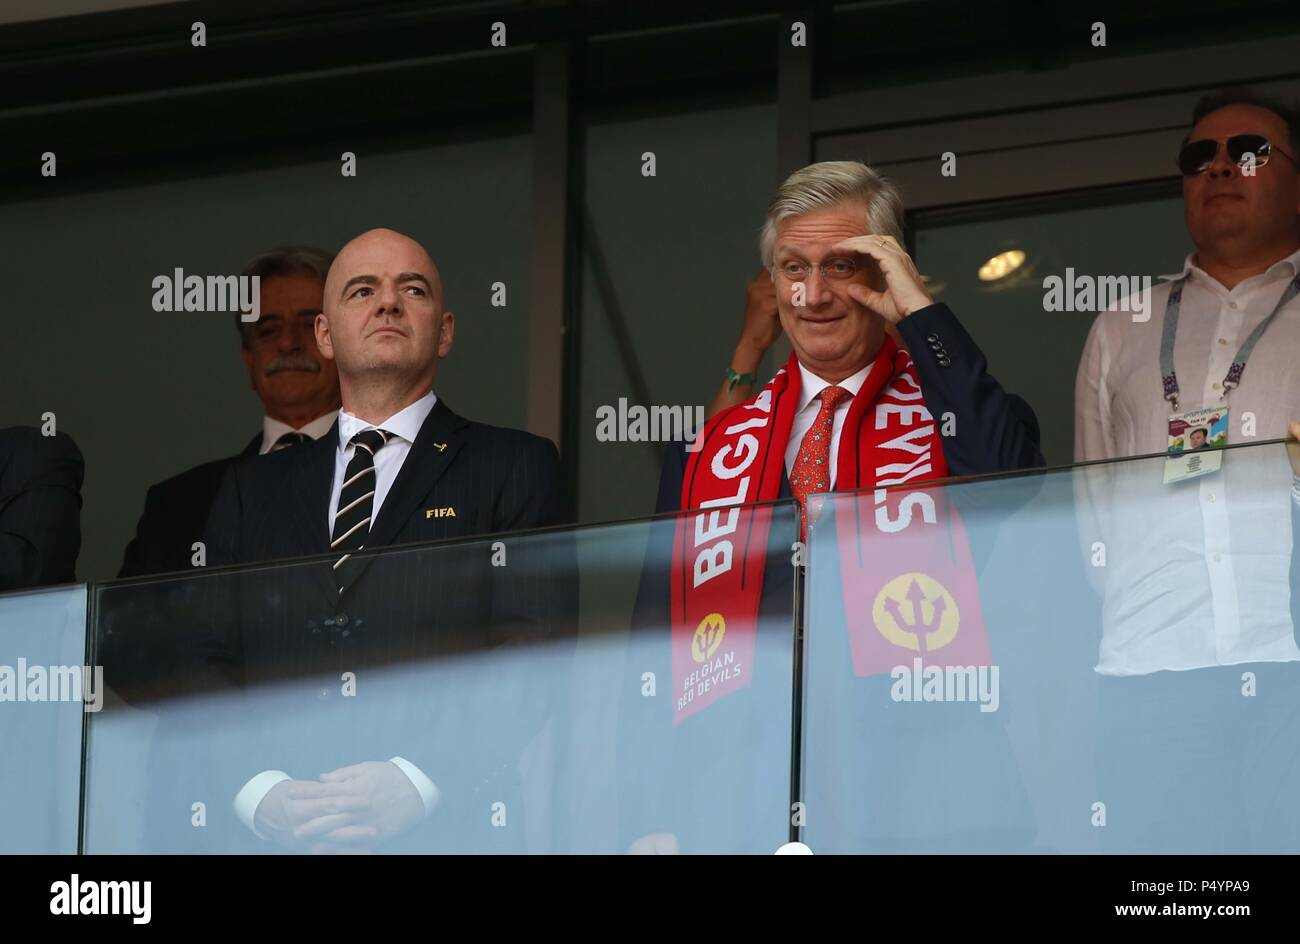 Moscow, Russia. 24th June, 2018. 23.06.2018. Moscow, Russia:President Fifa Infantino with King of Belgium Philippe in the Fifa World Cup Russia 2018, Group C, football match between BELGIUM V TUNISIA in SPARTAK STADIUM in Moscow Stadium Credit: Independent Photo Agency/Alamy Live News - Stock Image